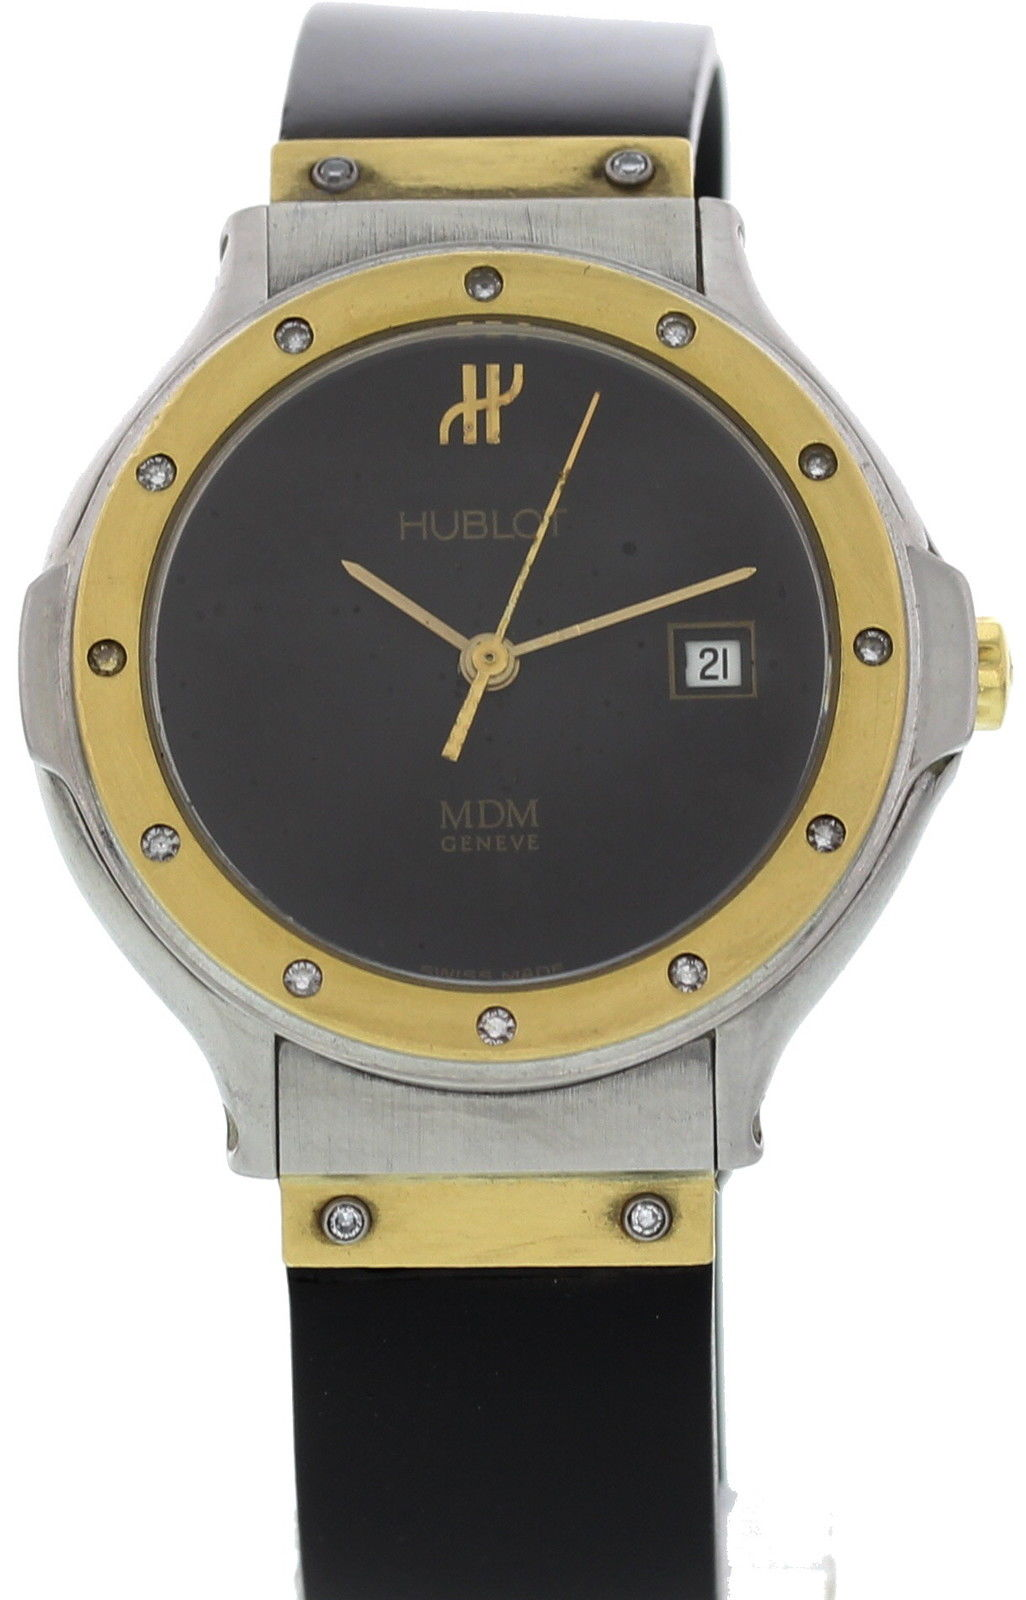 """Image of """"Hublot MDM 1391.2.044 18K Yellow Gold/Stainless Steel & Rubber with"""""""